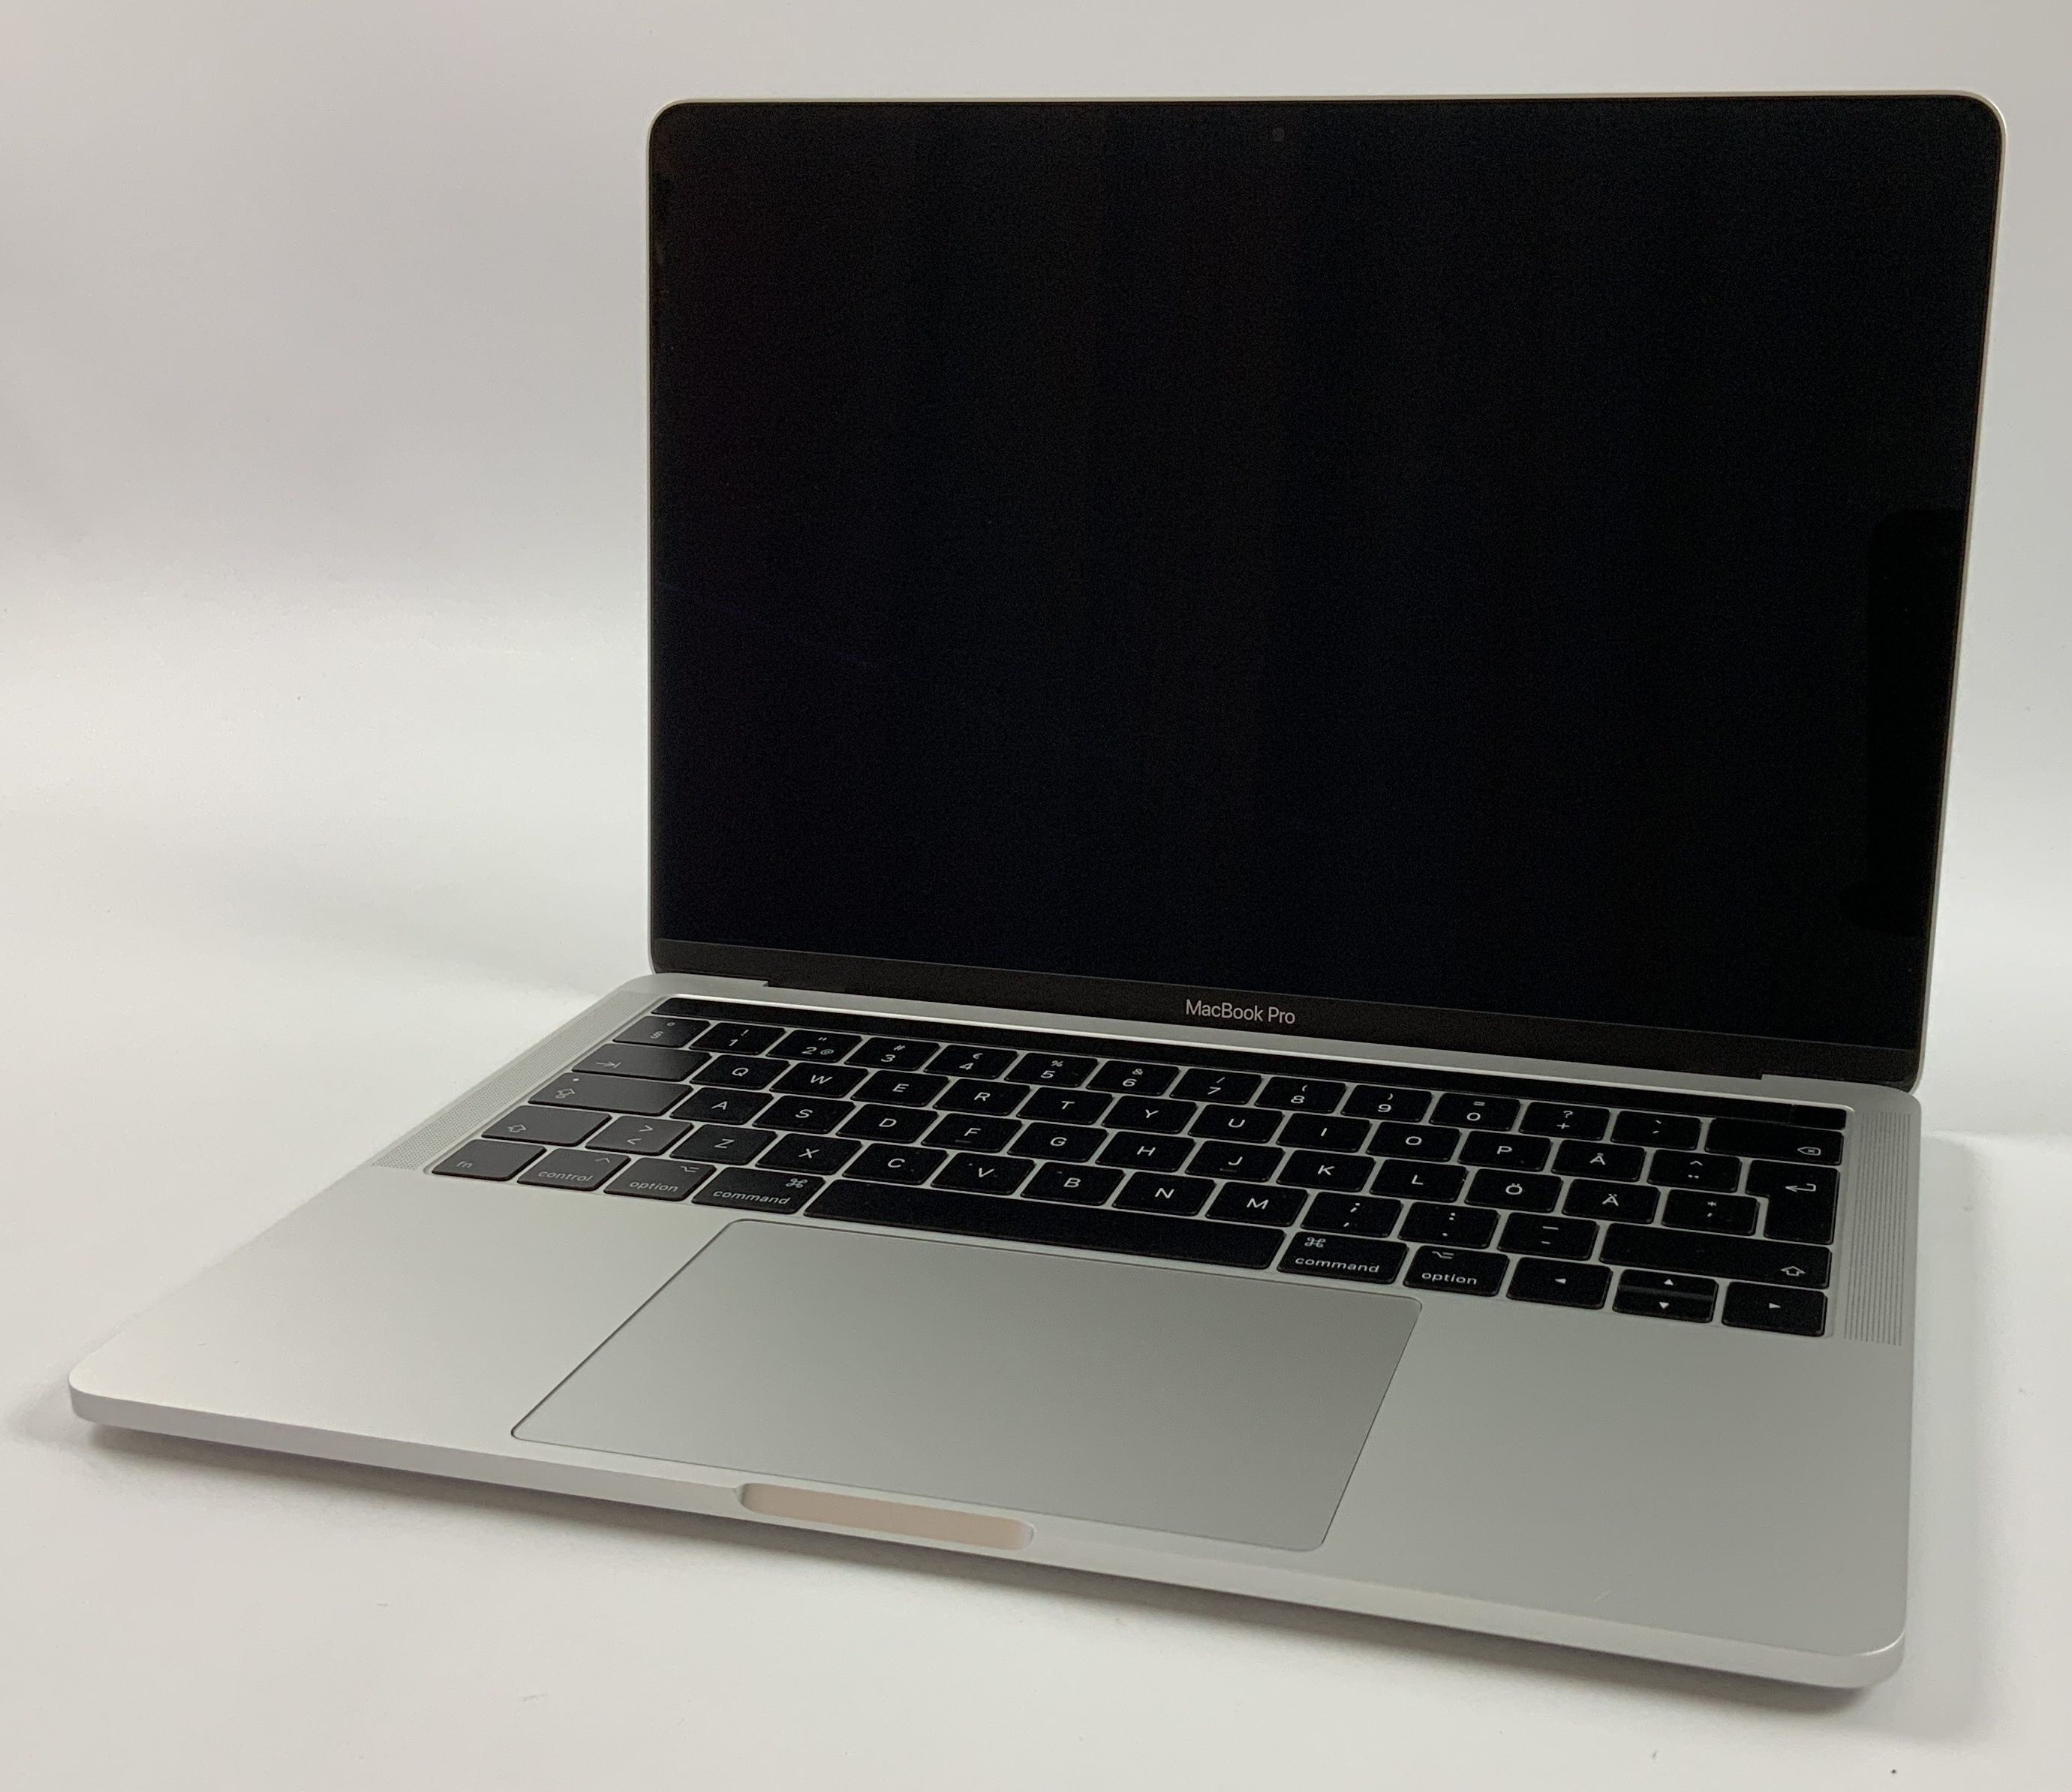 "MacBook Pro 13"" 4TBT Late 2016 (Intel Core i5 2.9 GHz 8 GB RAM 256 GB SSD), Silver, Intel Core i5 2.9 GHz, 8 GB RAM, 256 GB SSD, Bild 1"